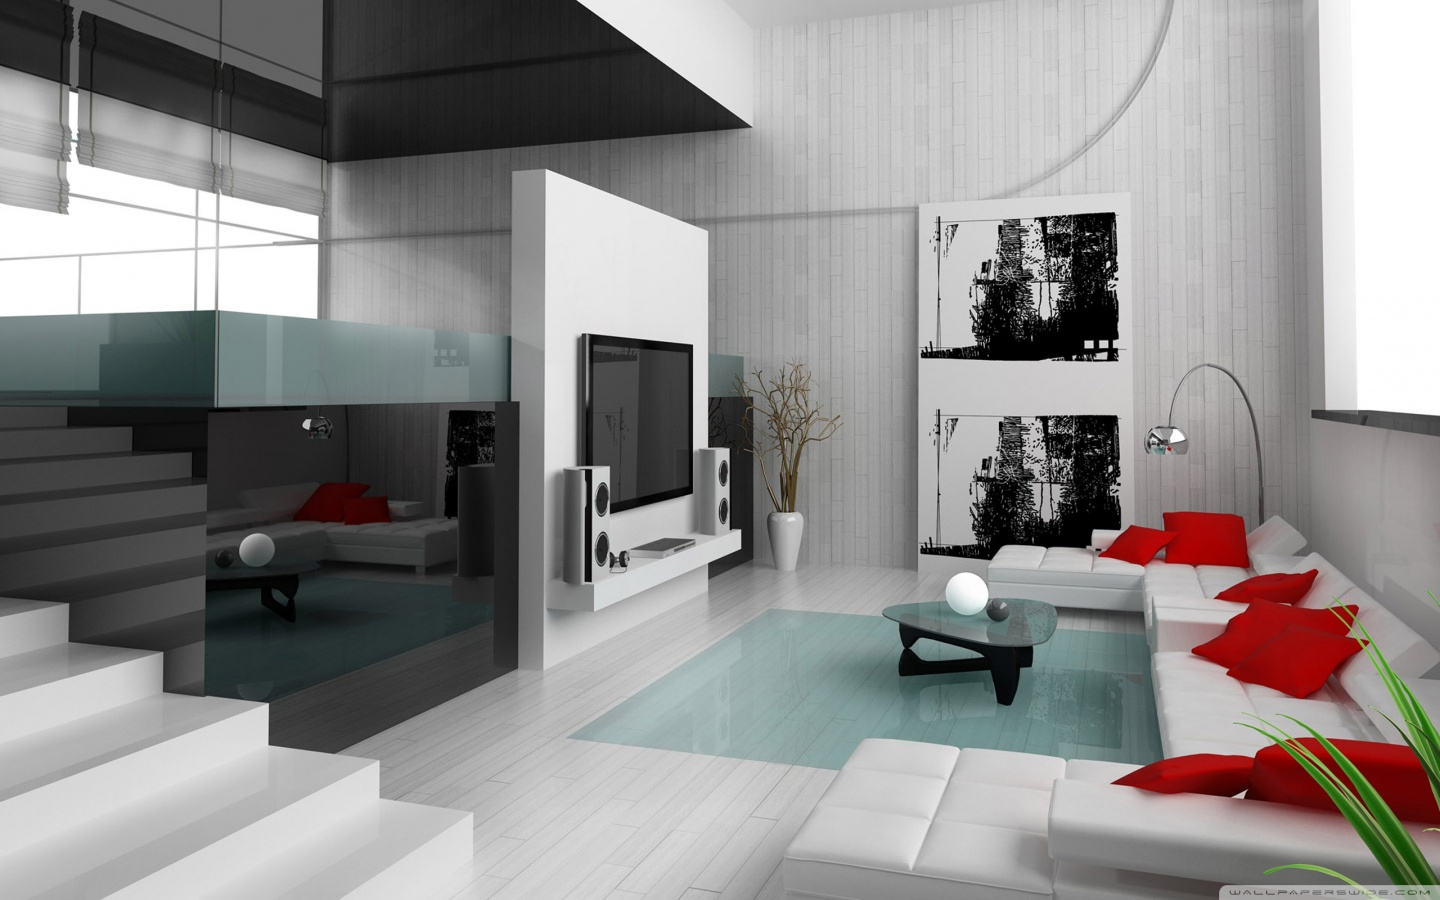 Minimalist interior design imagination art architecture for Minimalist house interior